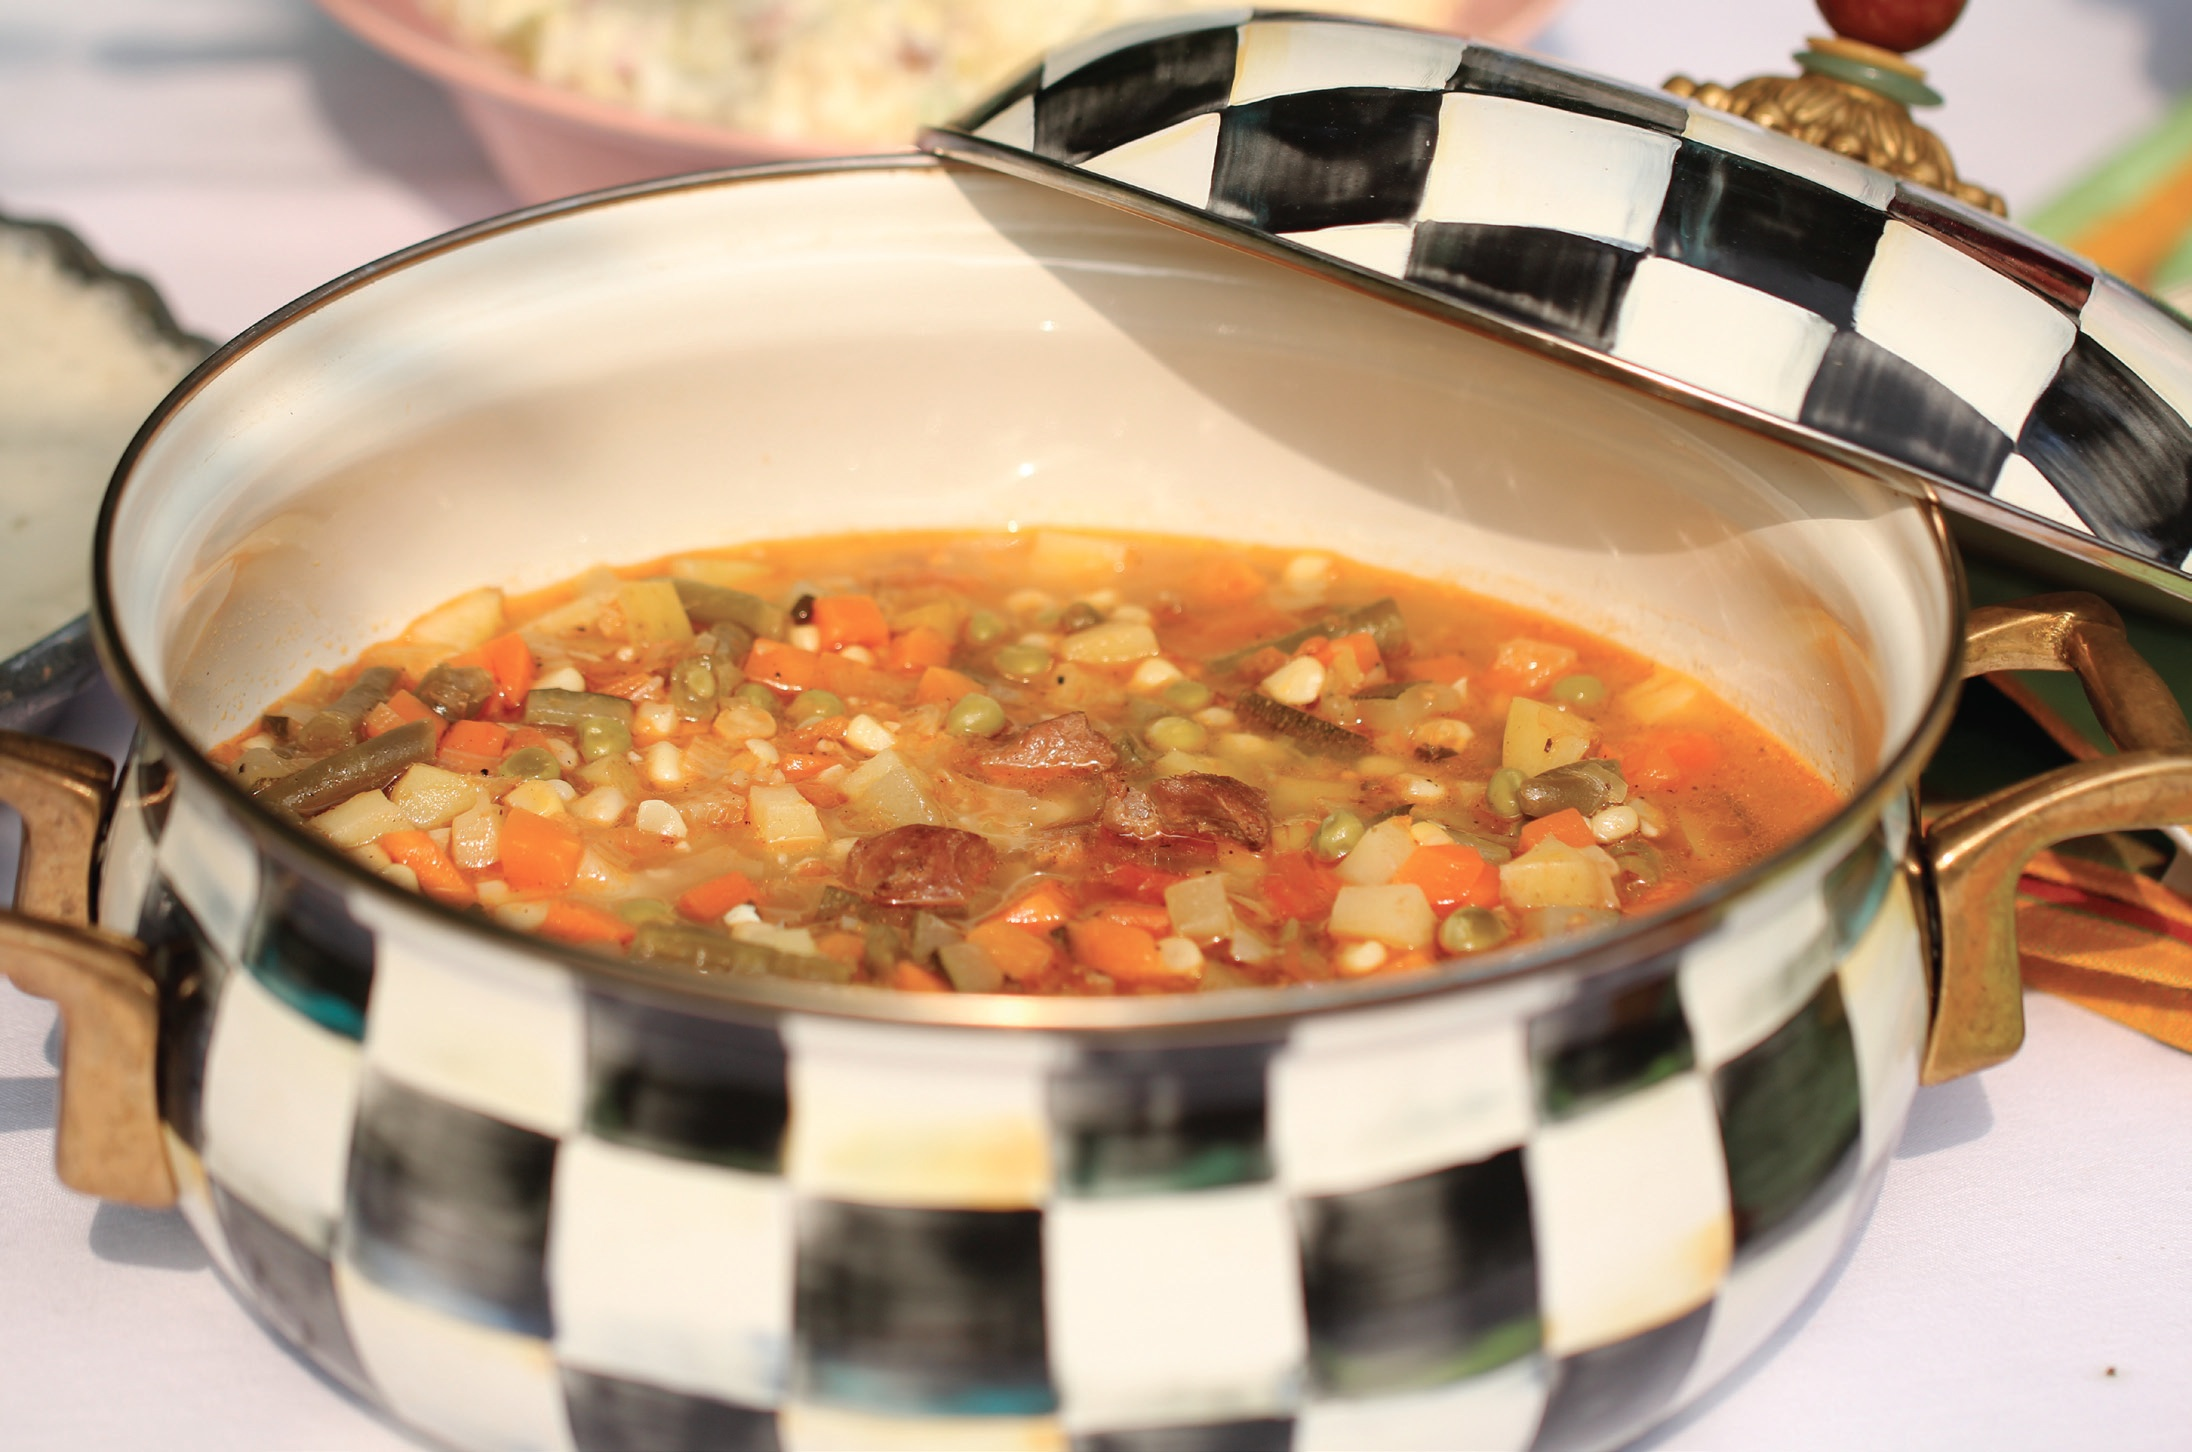 Ground venison adds great flavor and depth to vegetable soup, which is good anytime of the year.